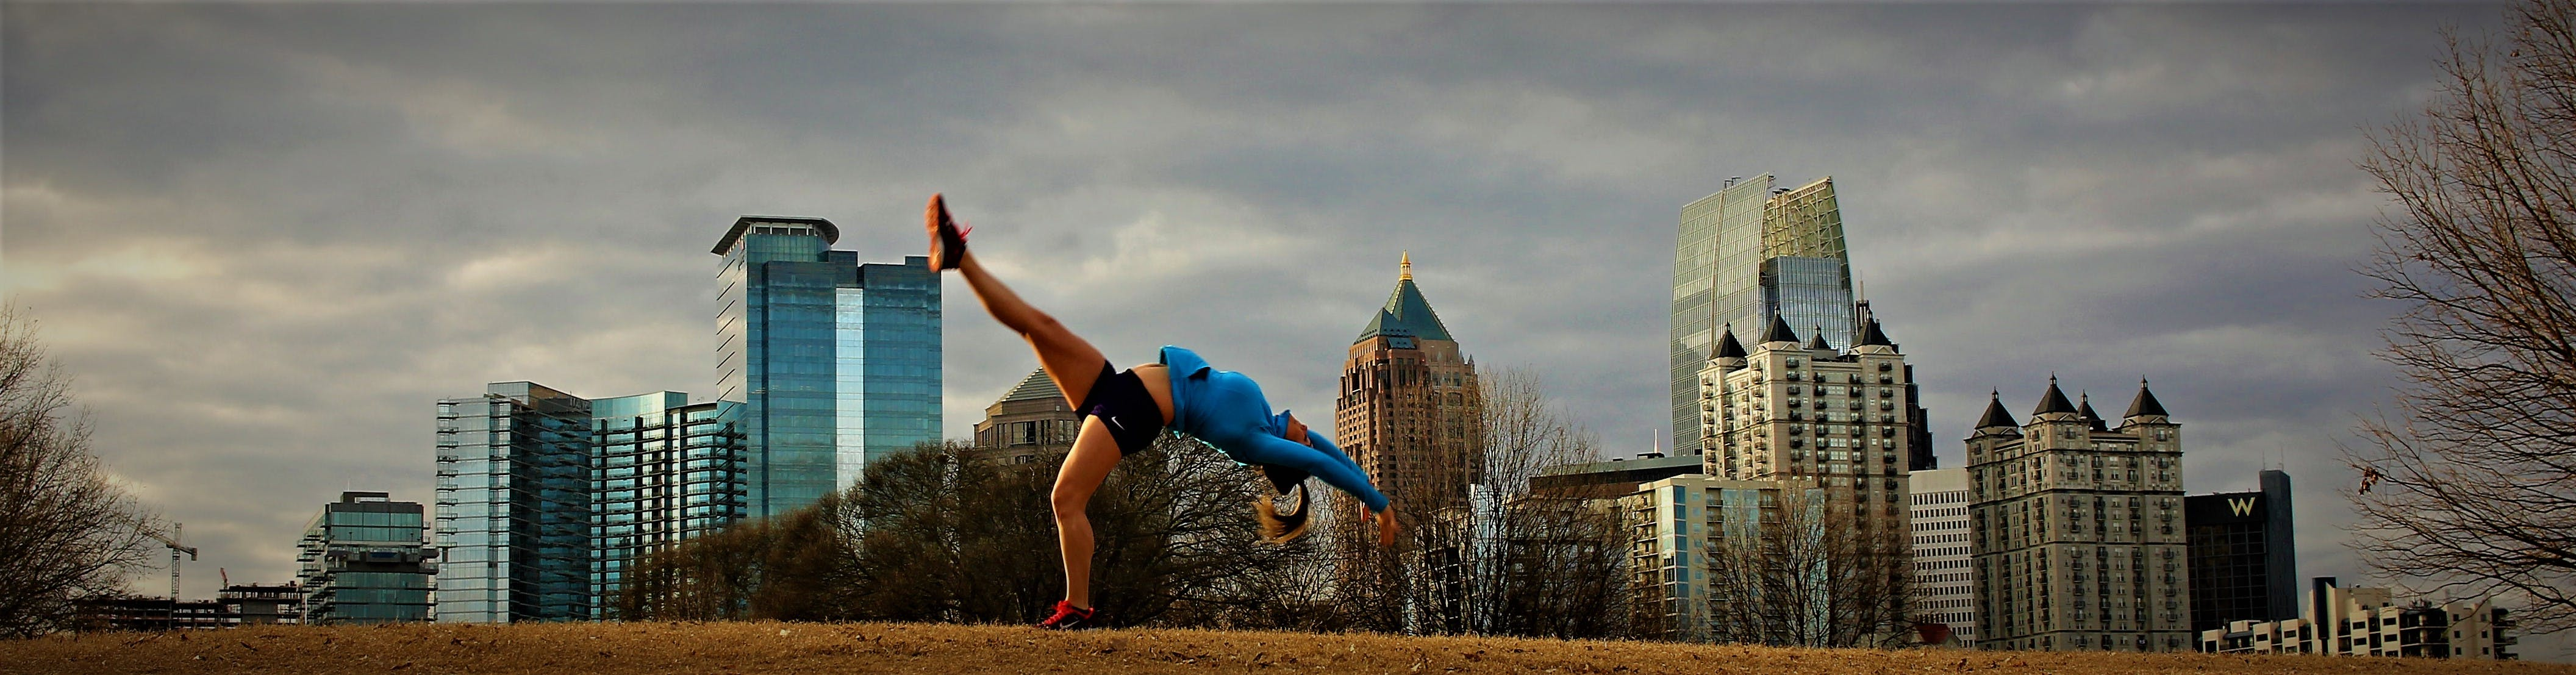 Free stock photo of buildings, city park, fitness model, gymnastics